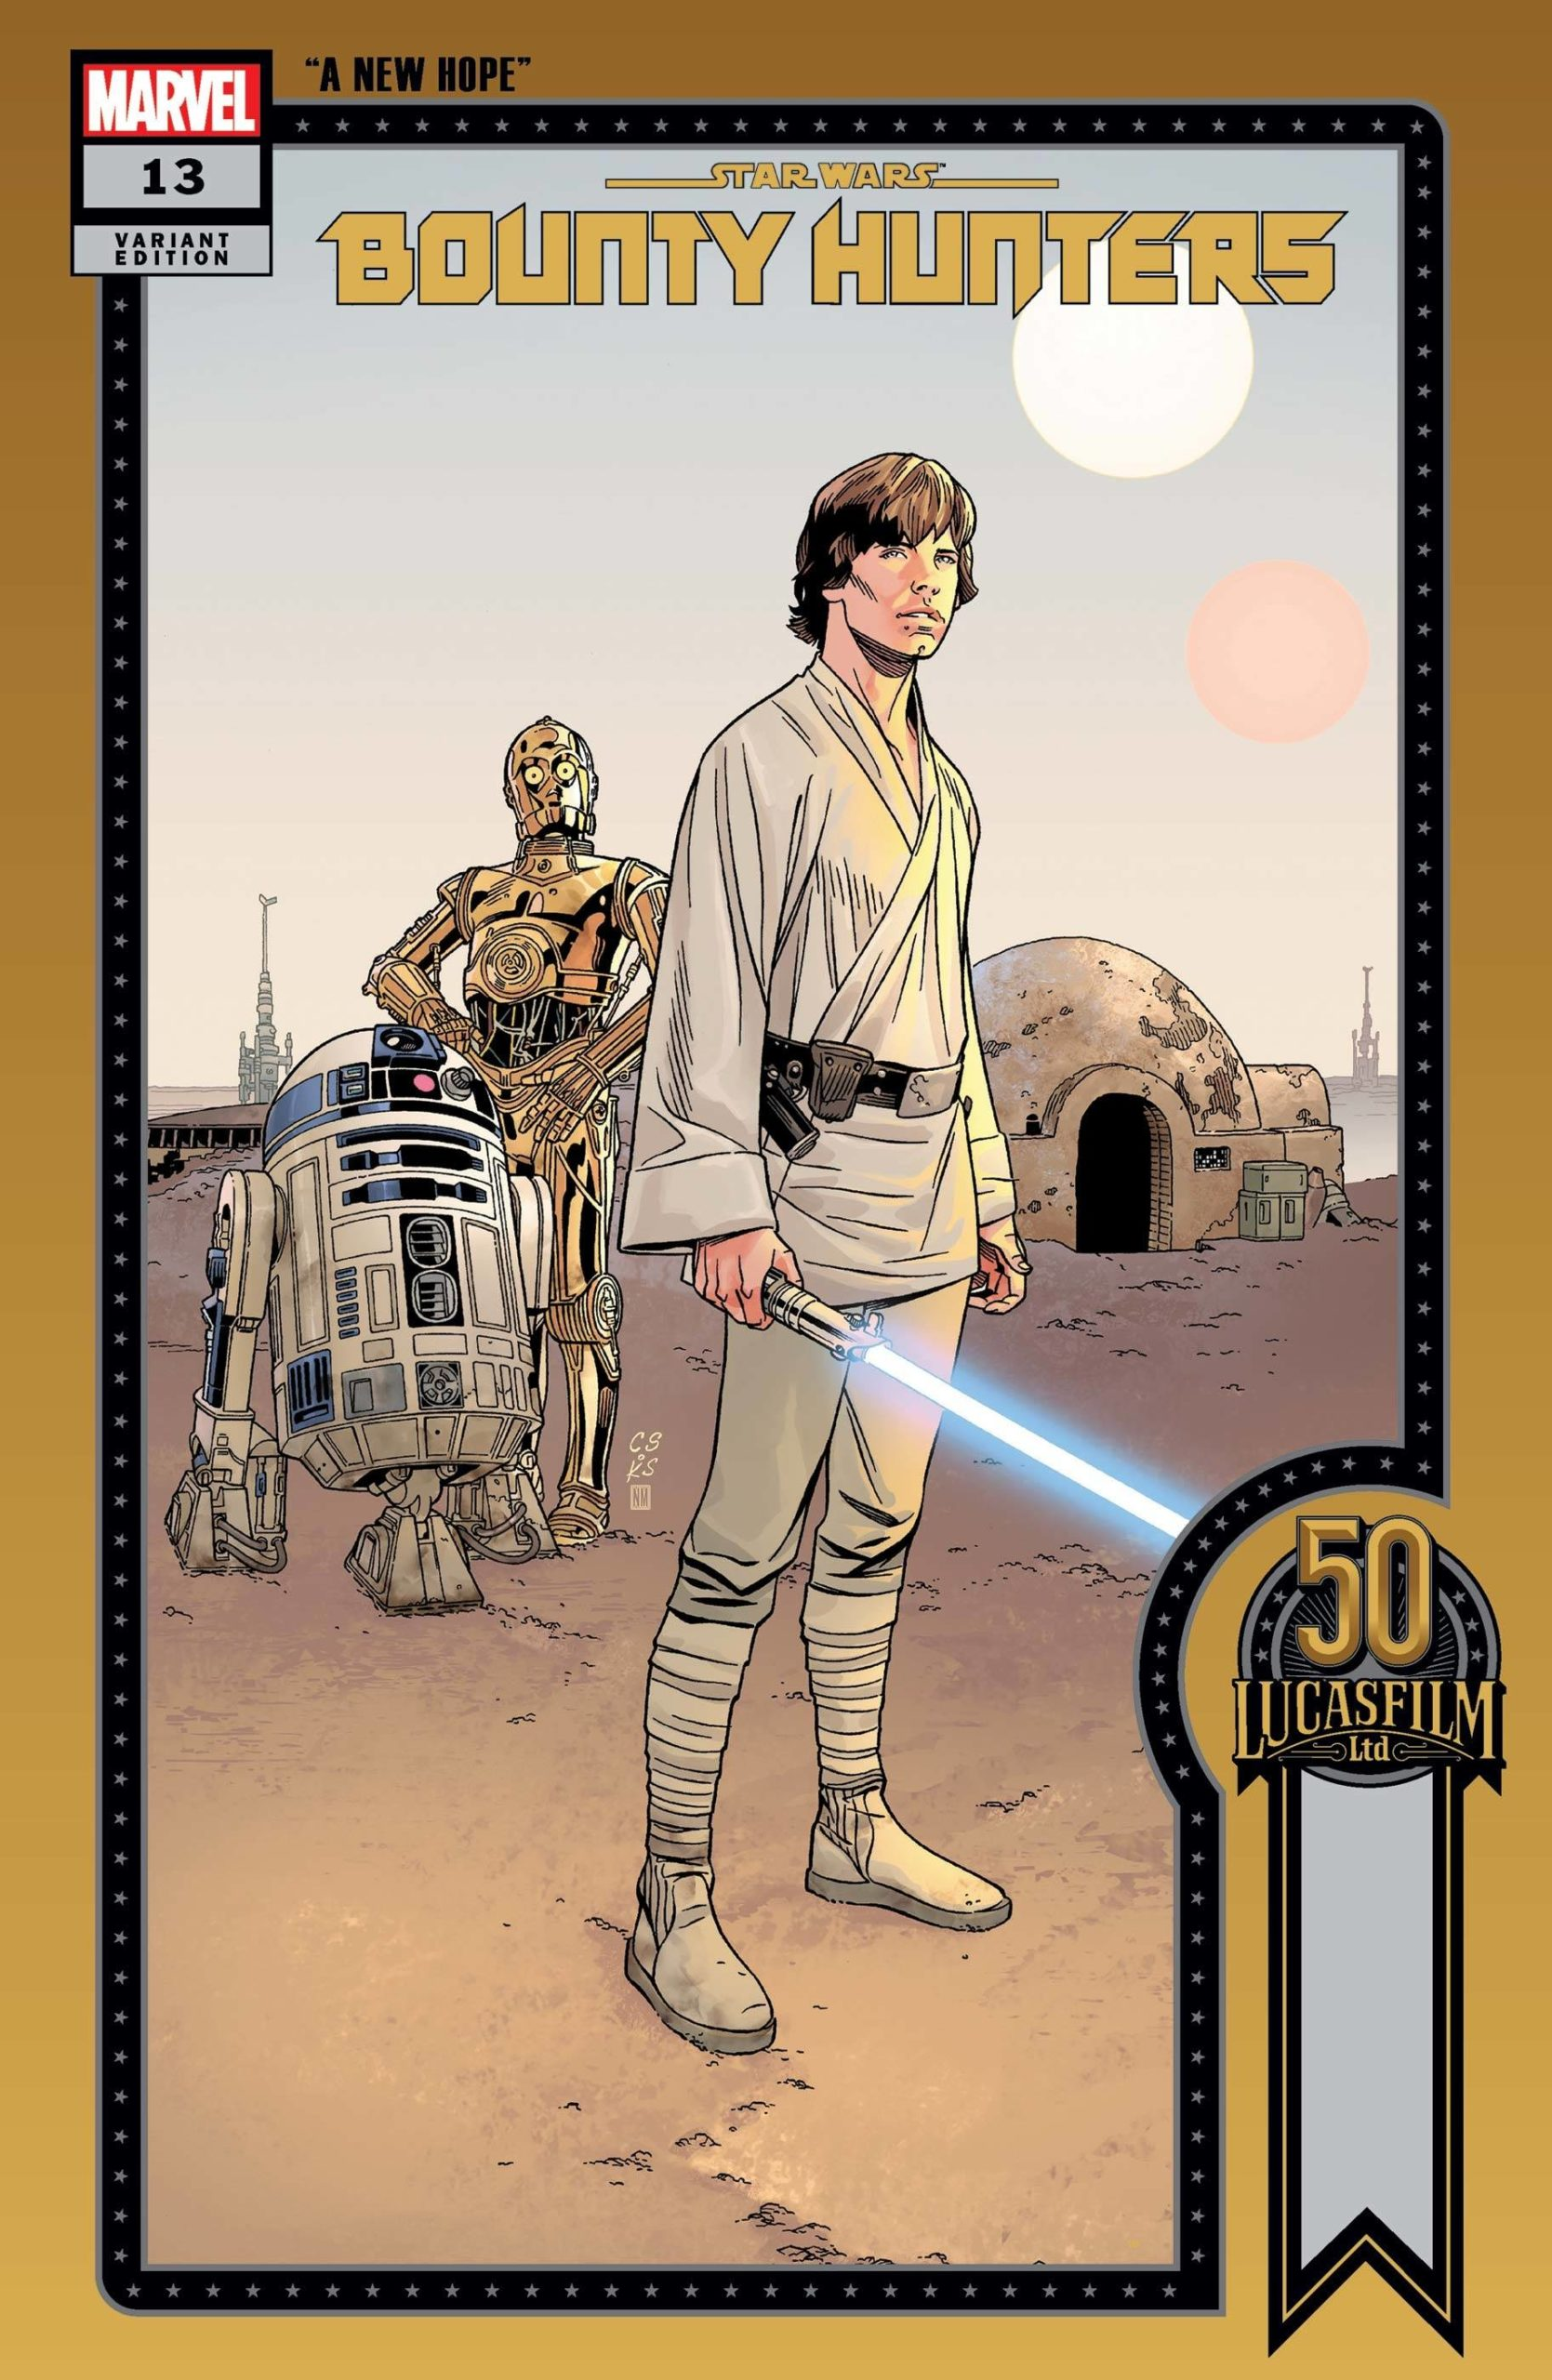 Bounty Hunters #13 (Chris Sprouse Lucasfilm 50th Anniversary Variant Cover 1 of 36) (09.06.2021)